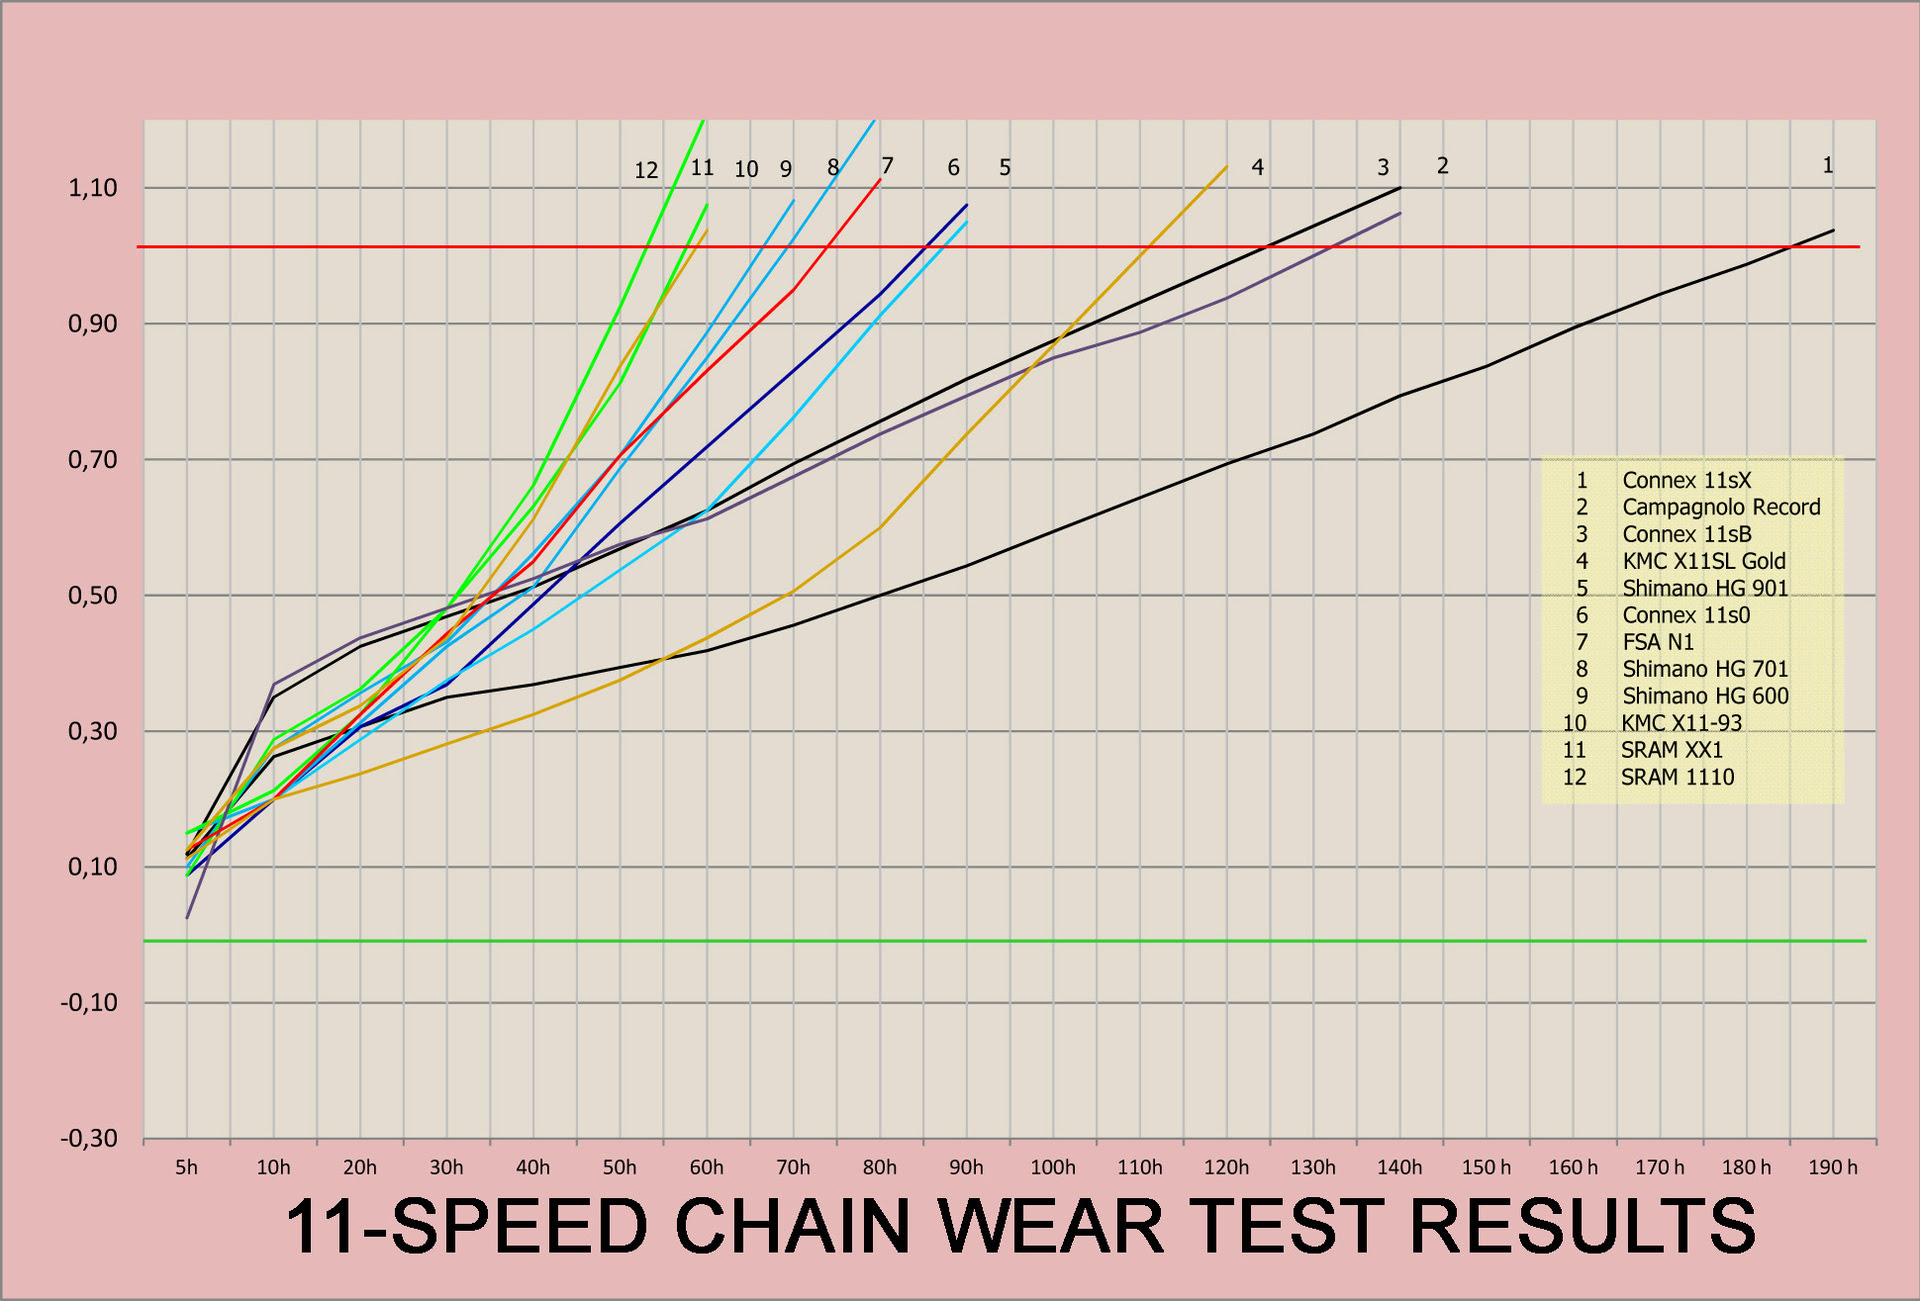 [Obrazek: Wippermann-connex-chain-11-speed-wear-test-results.jpg]